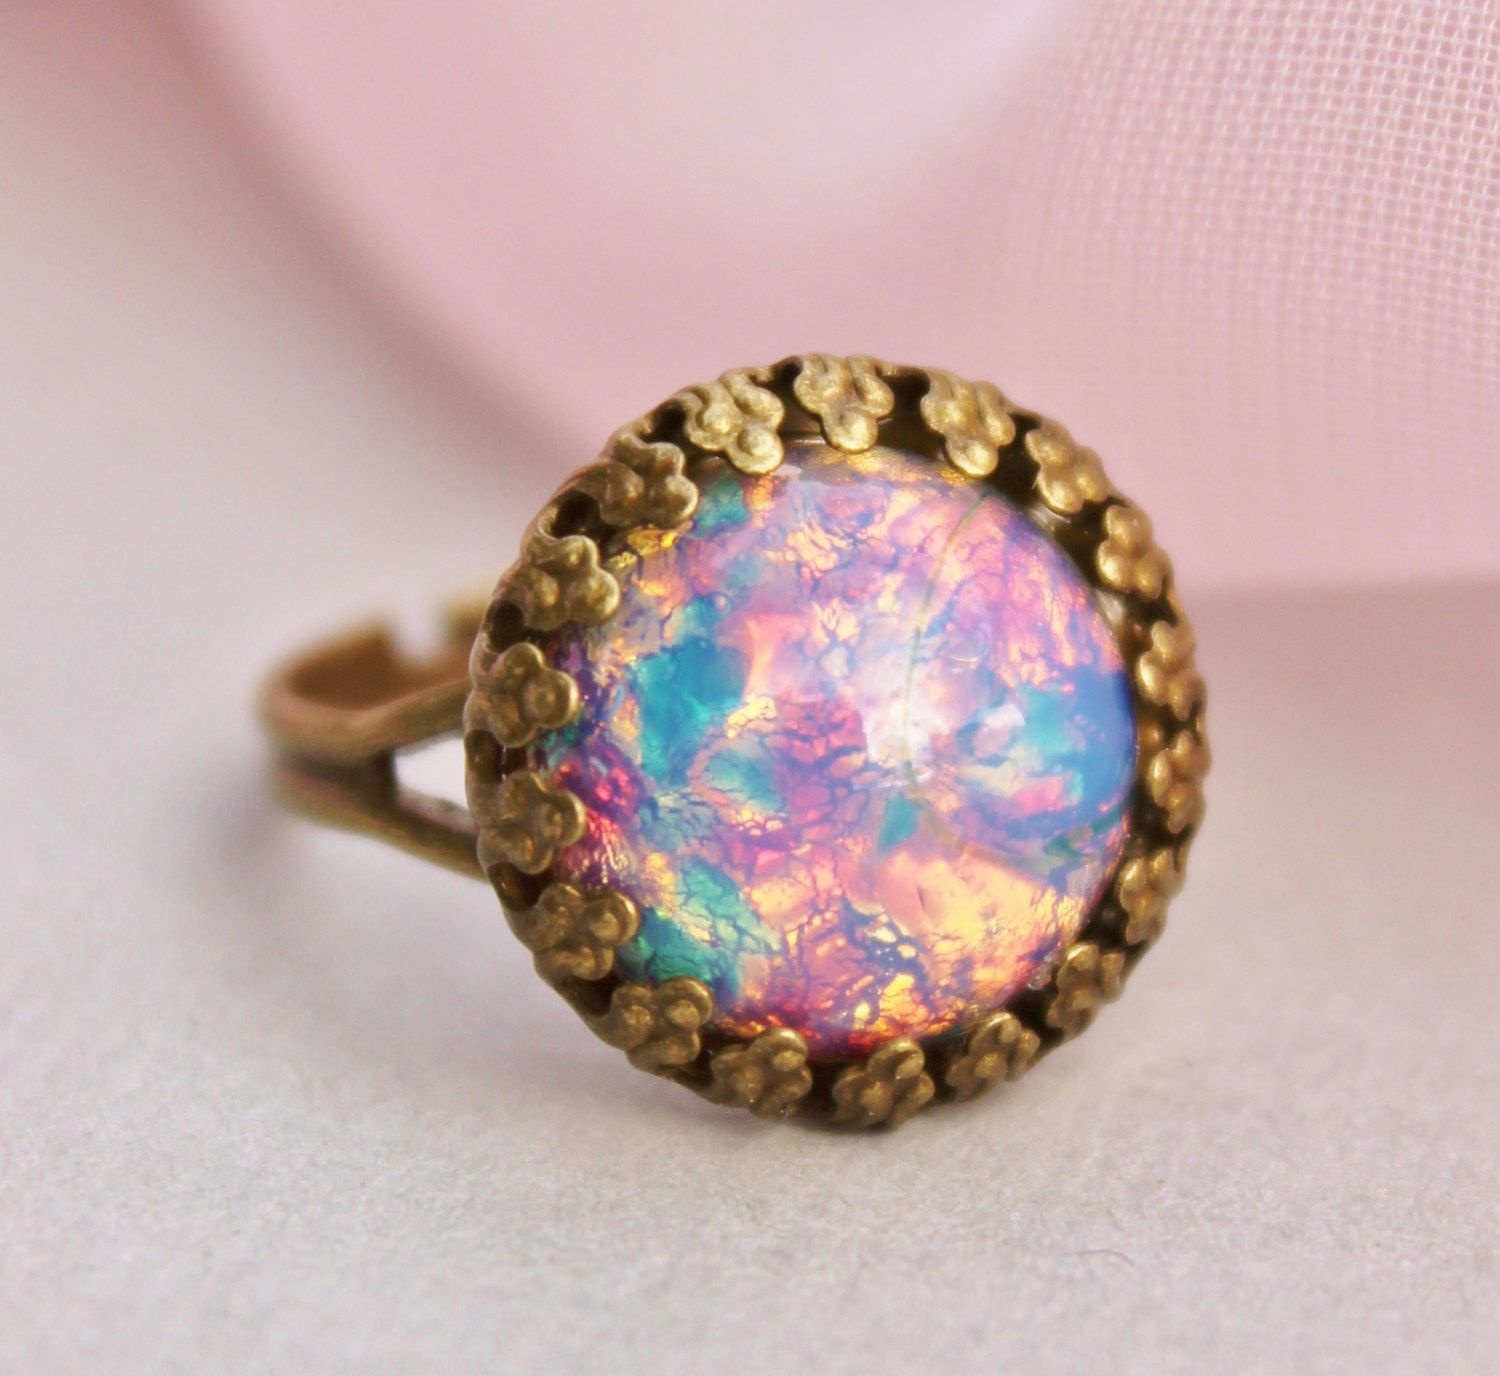 Vintage Fire Opal Ring - Harlequin Glass Opal Adjustable Ring ...